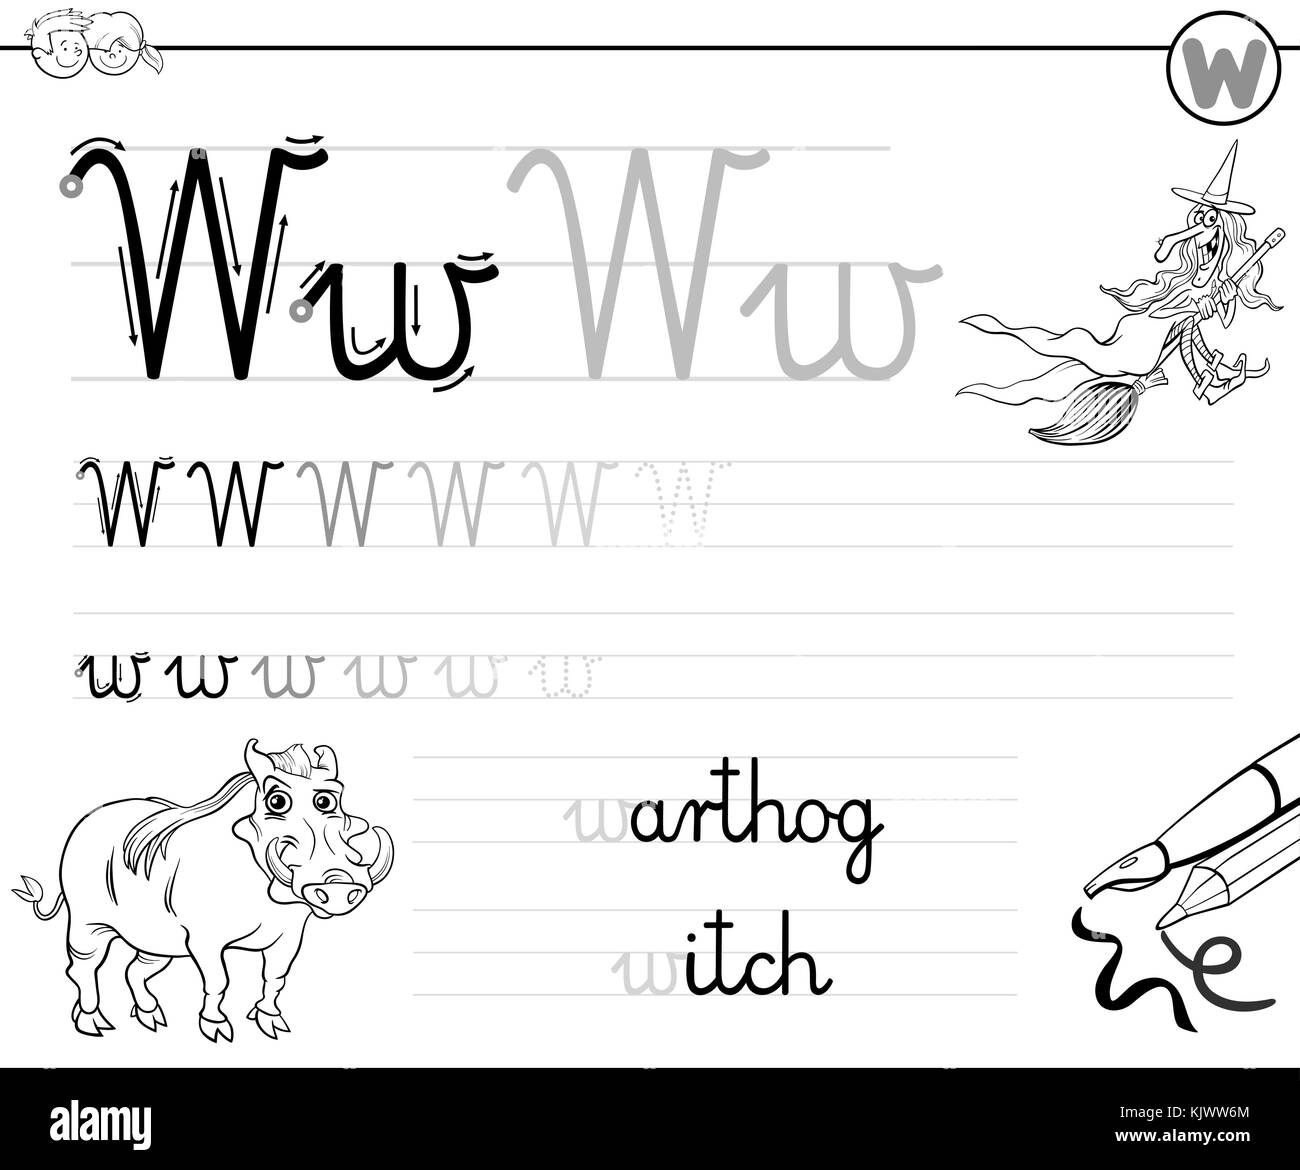 Animal Alphabet W Stock Vector Images